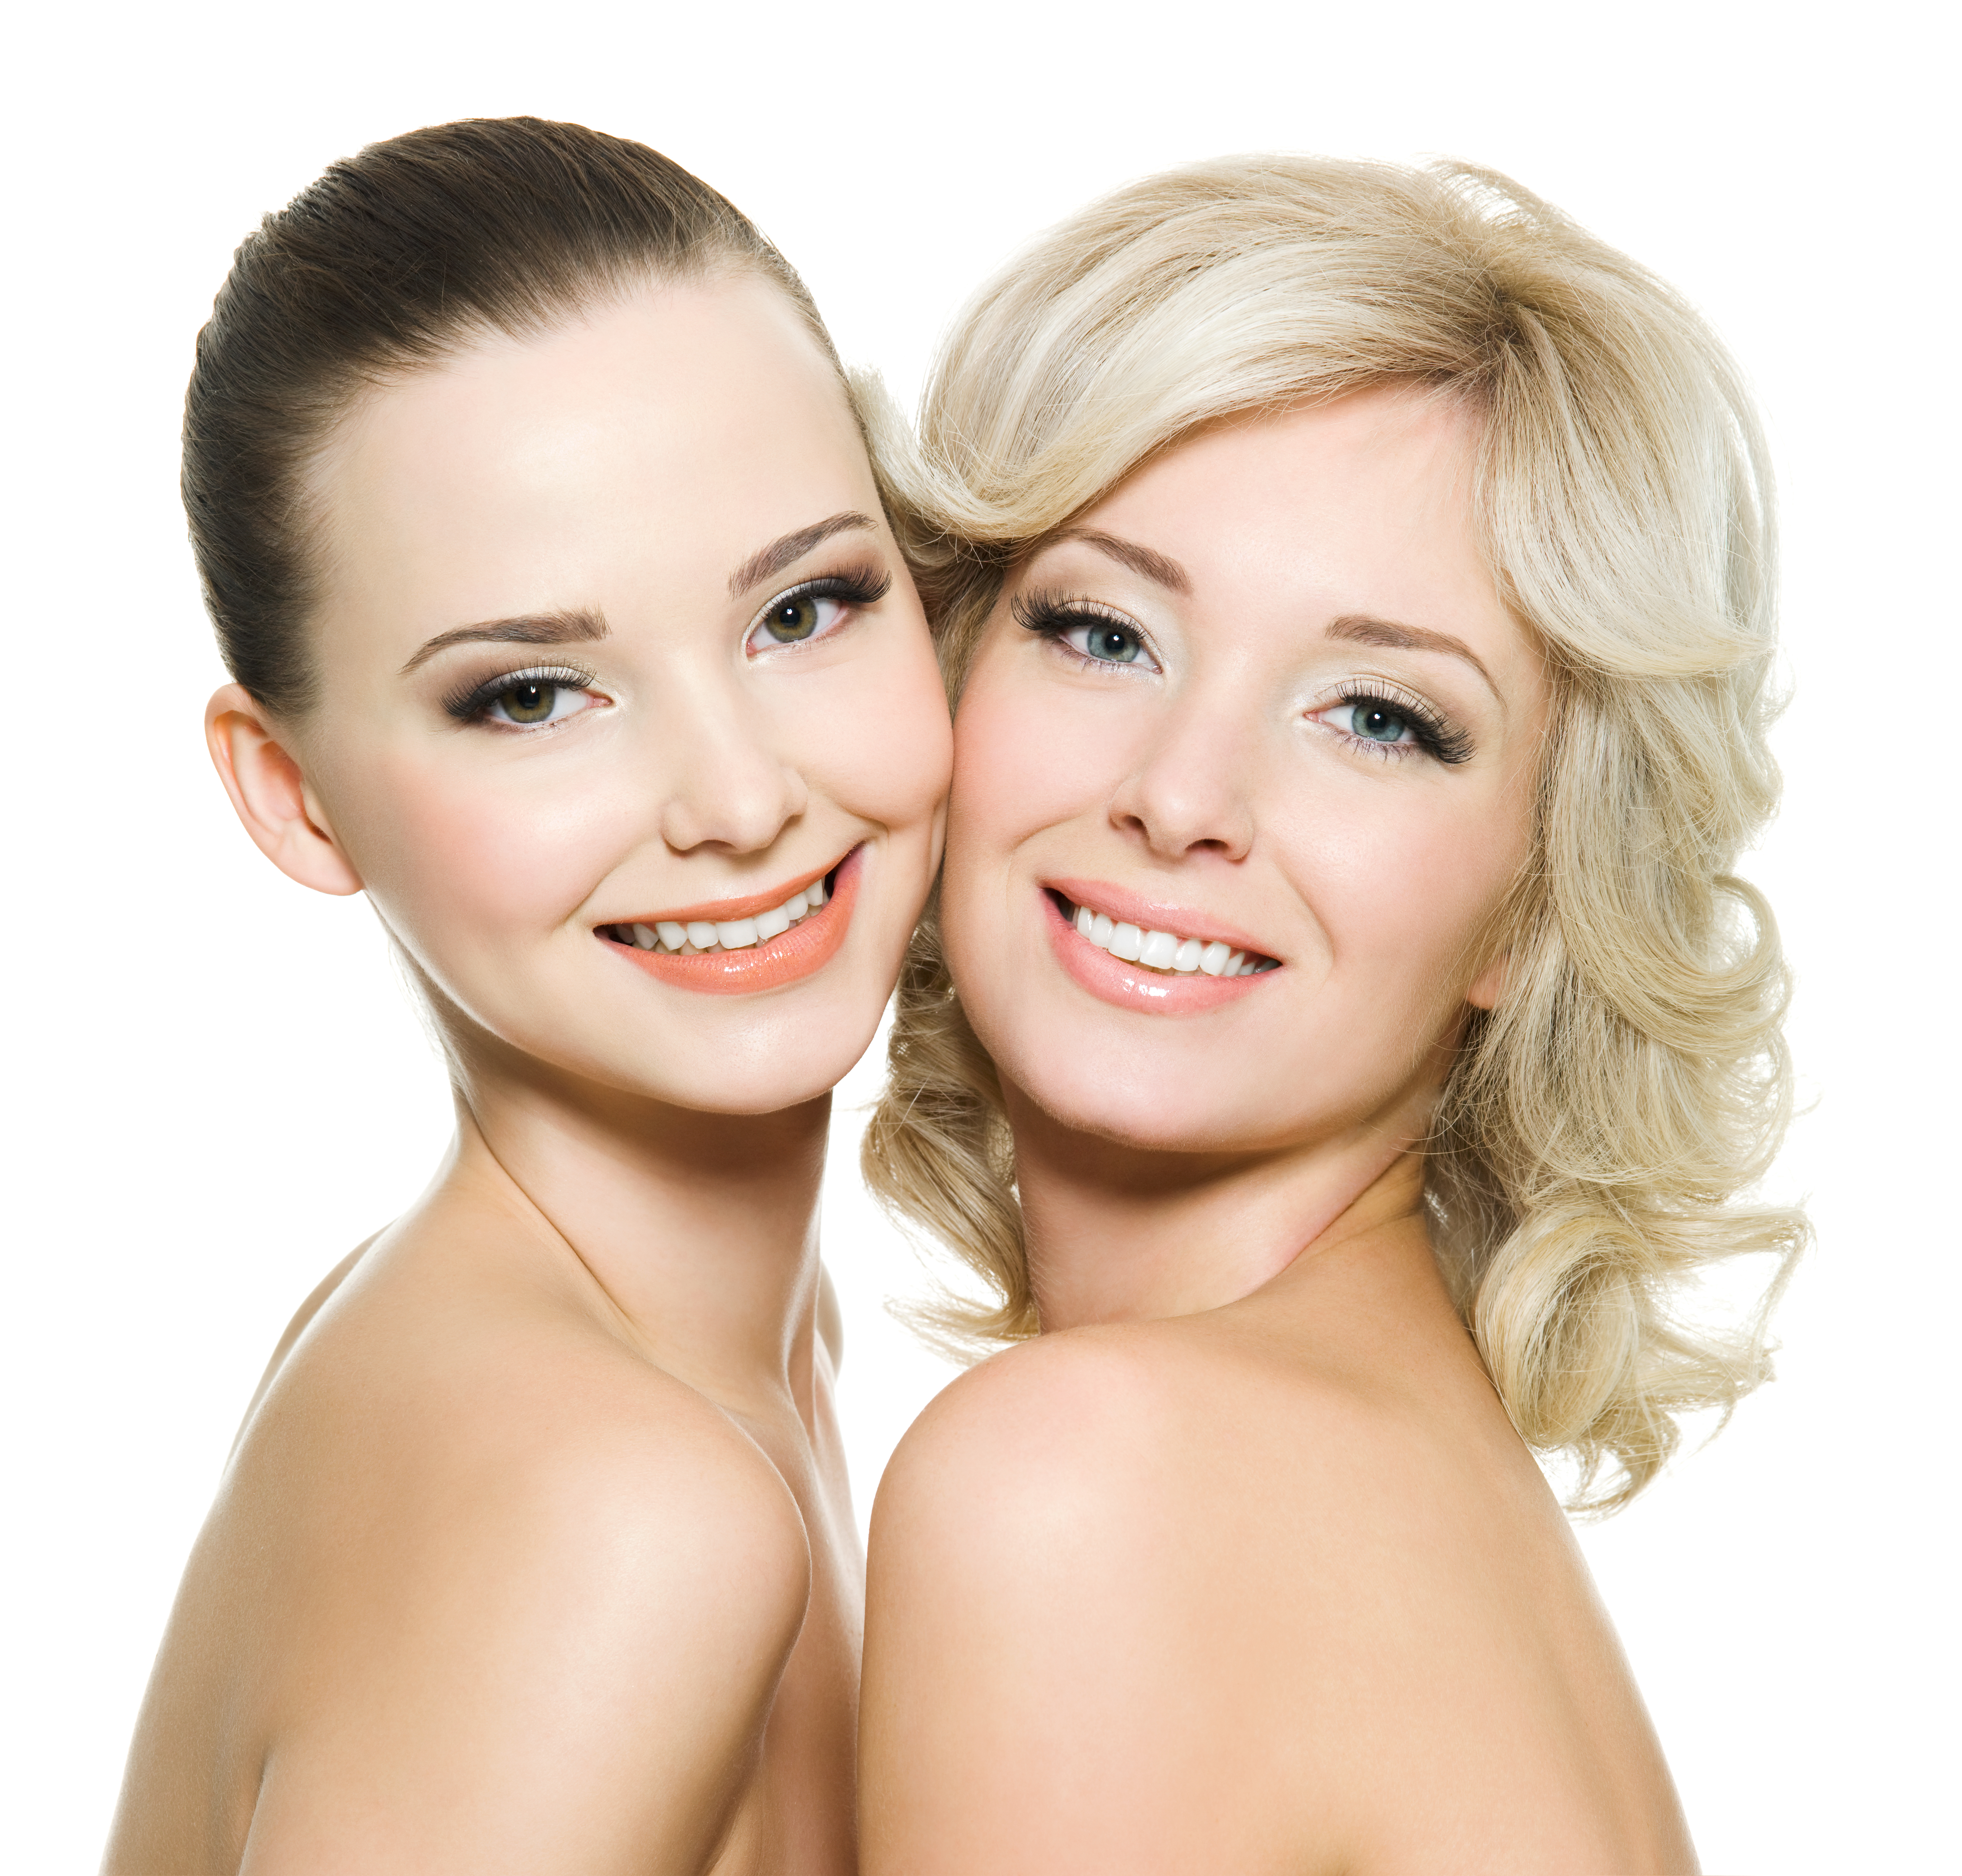 Top Plastic Surgery Procedures For Women And Men Palm Springs Med Spa